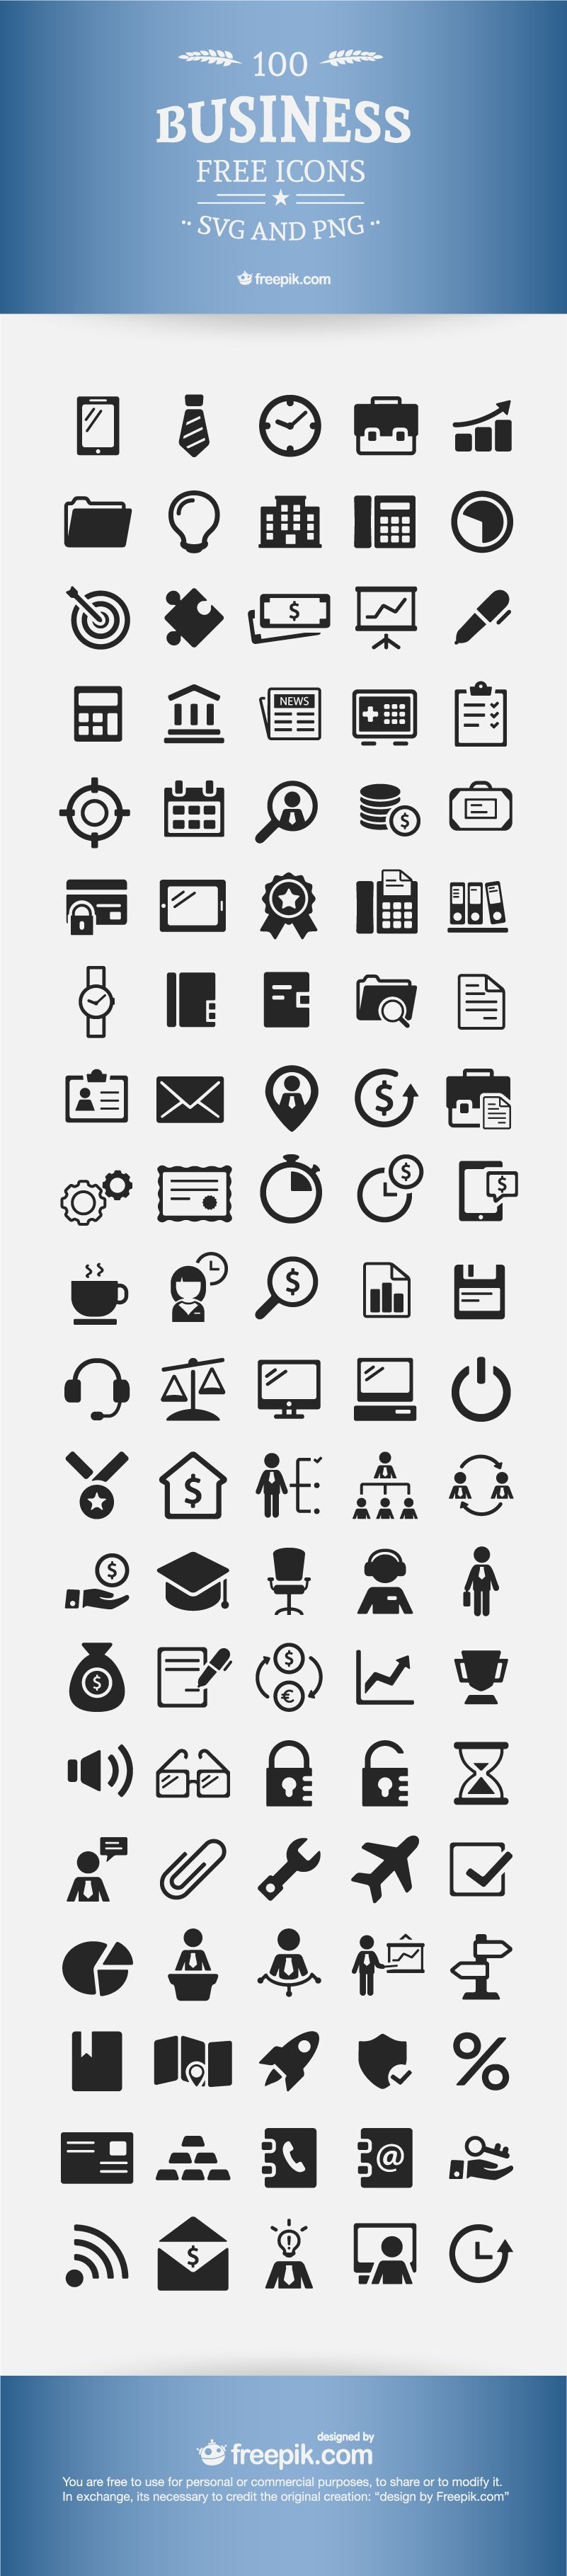 100 Free Business Icons